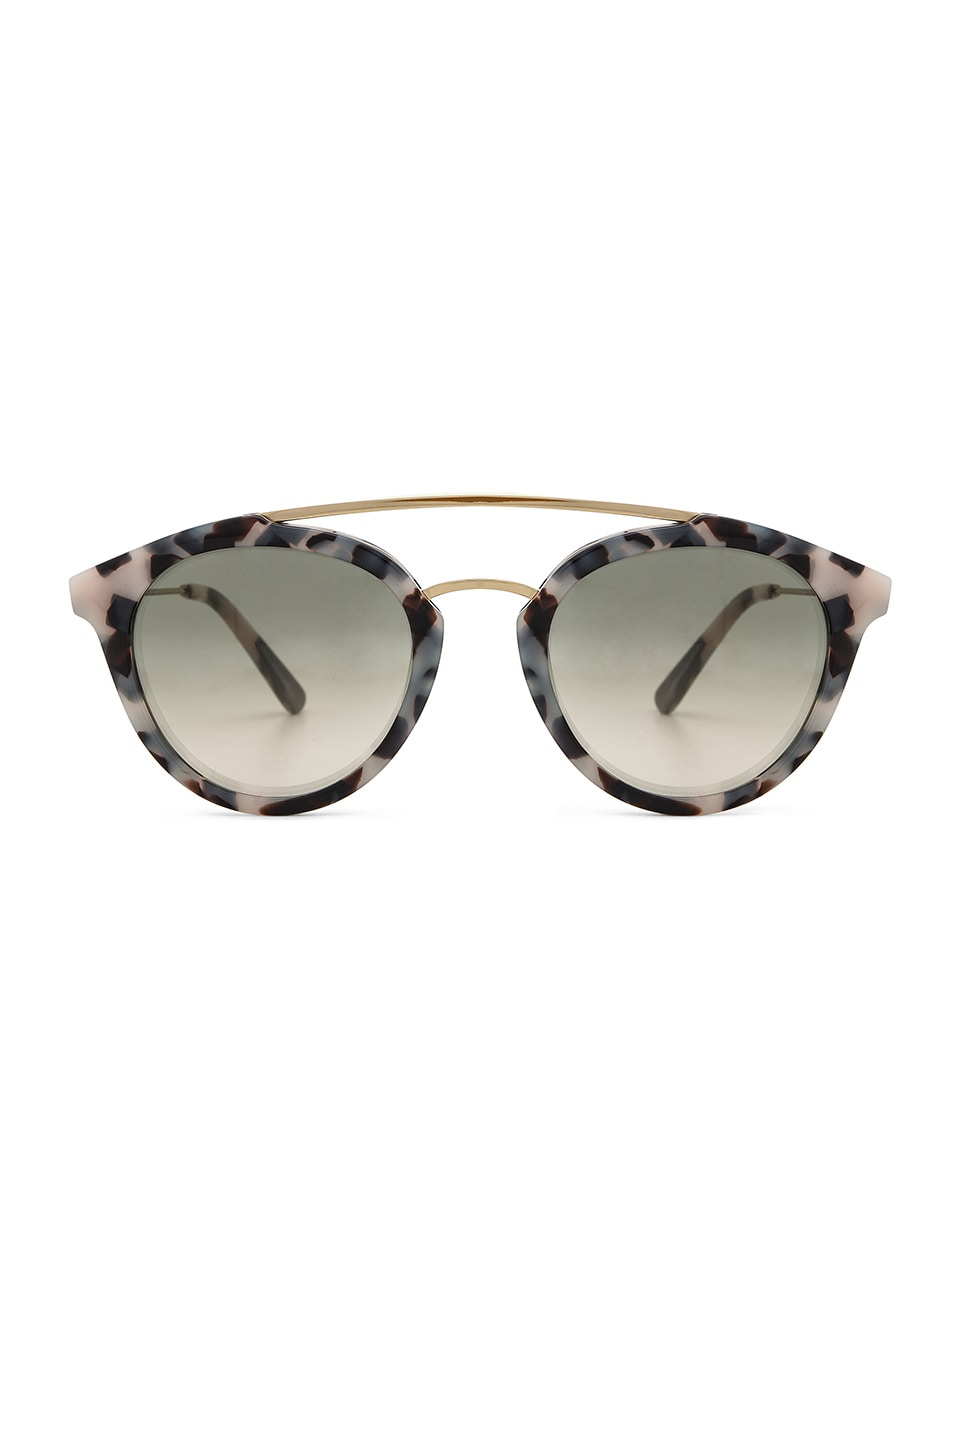 WESTWARD LEANING Double Bridge Sunglasses in Snow Leopard Acetate